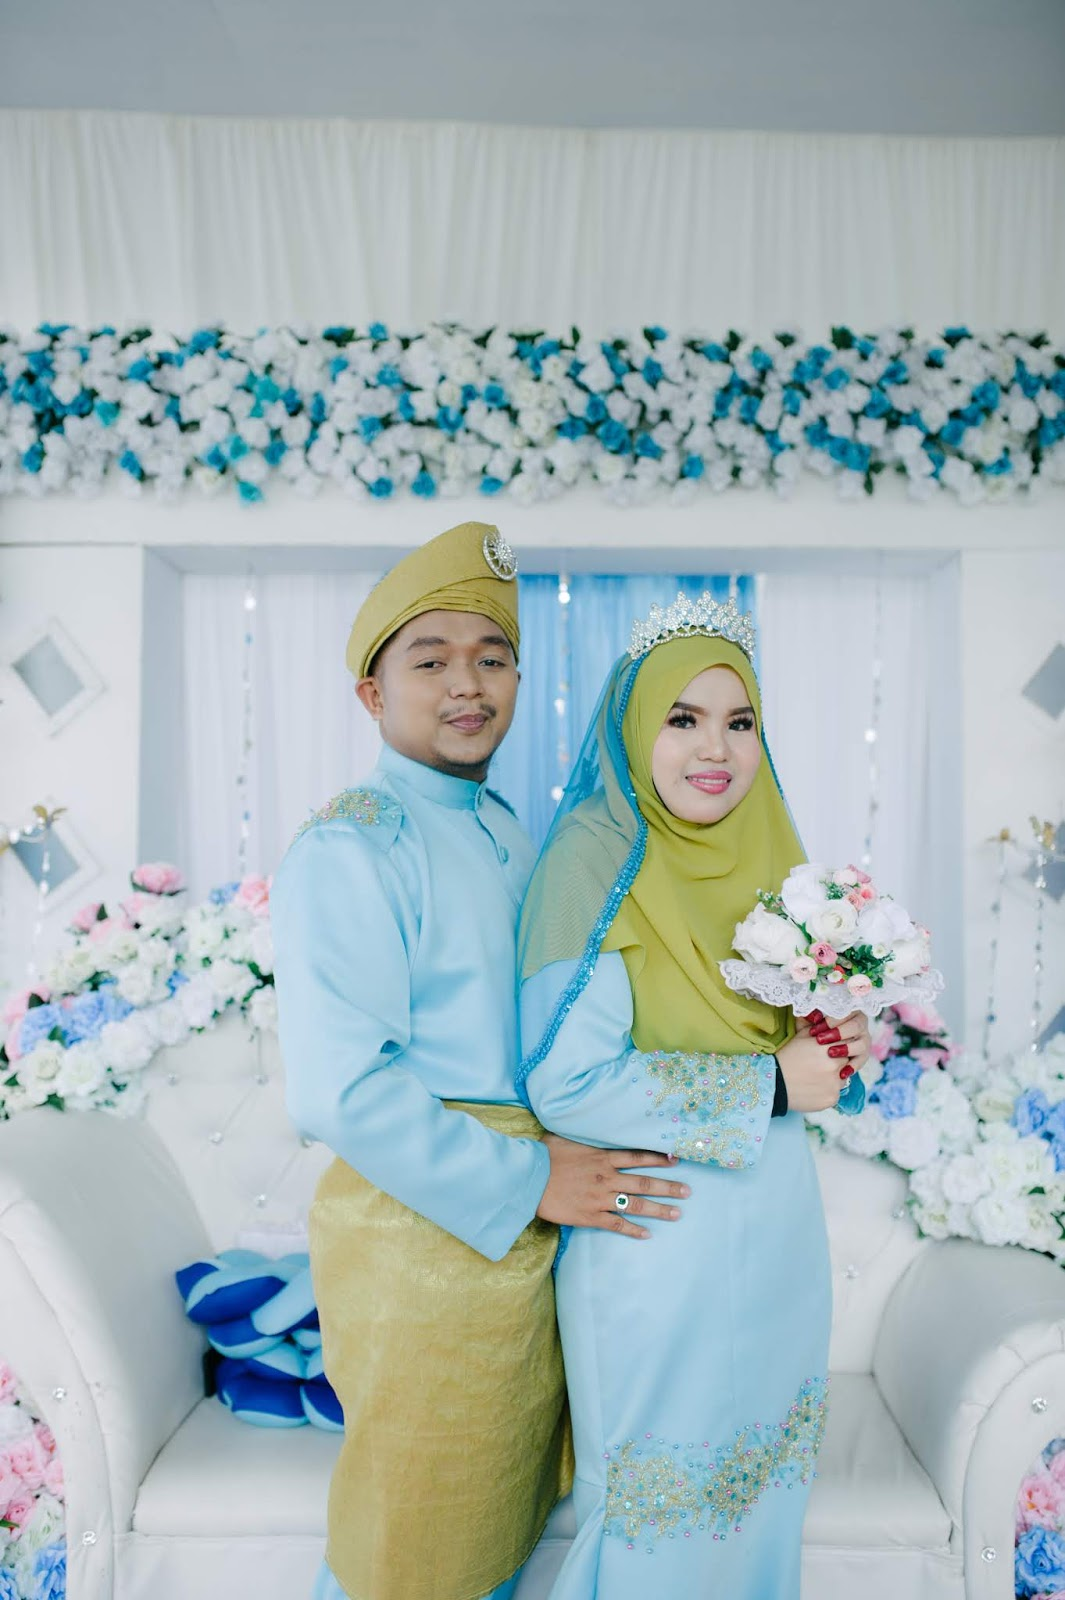 Lina + Bidin | 17 Feb 2018 | Reception